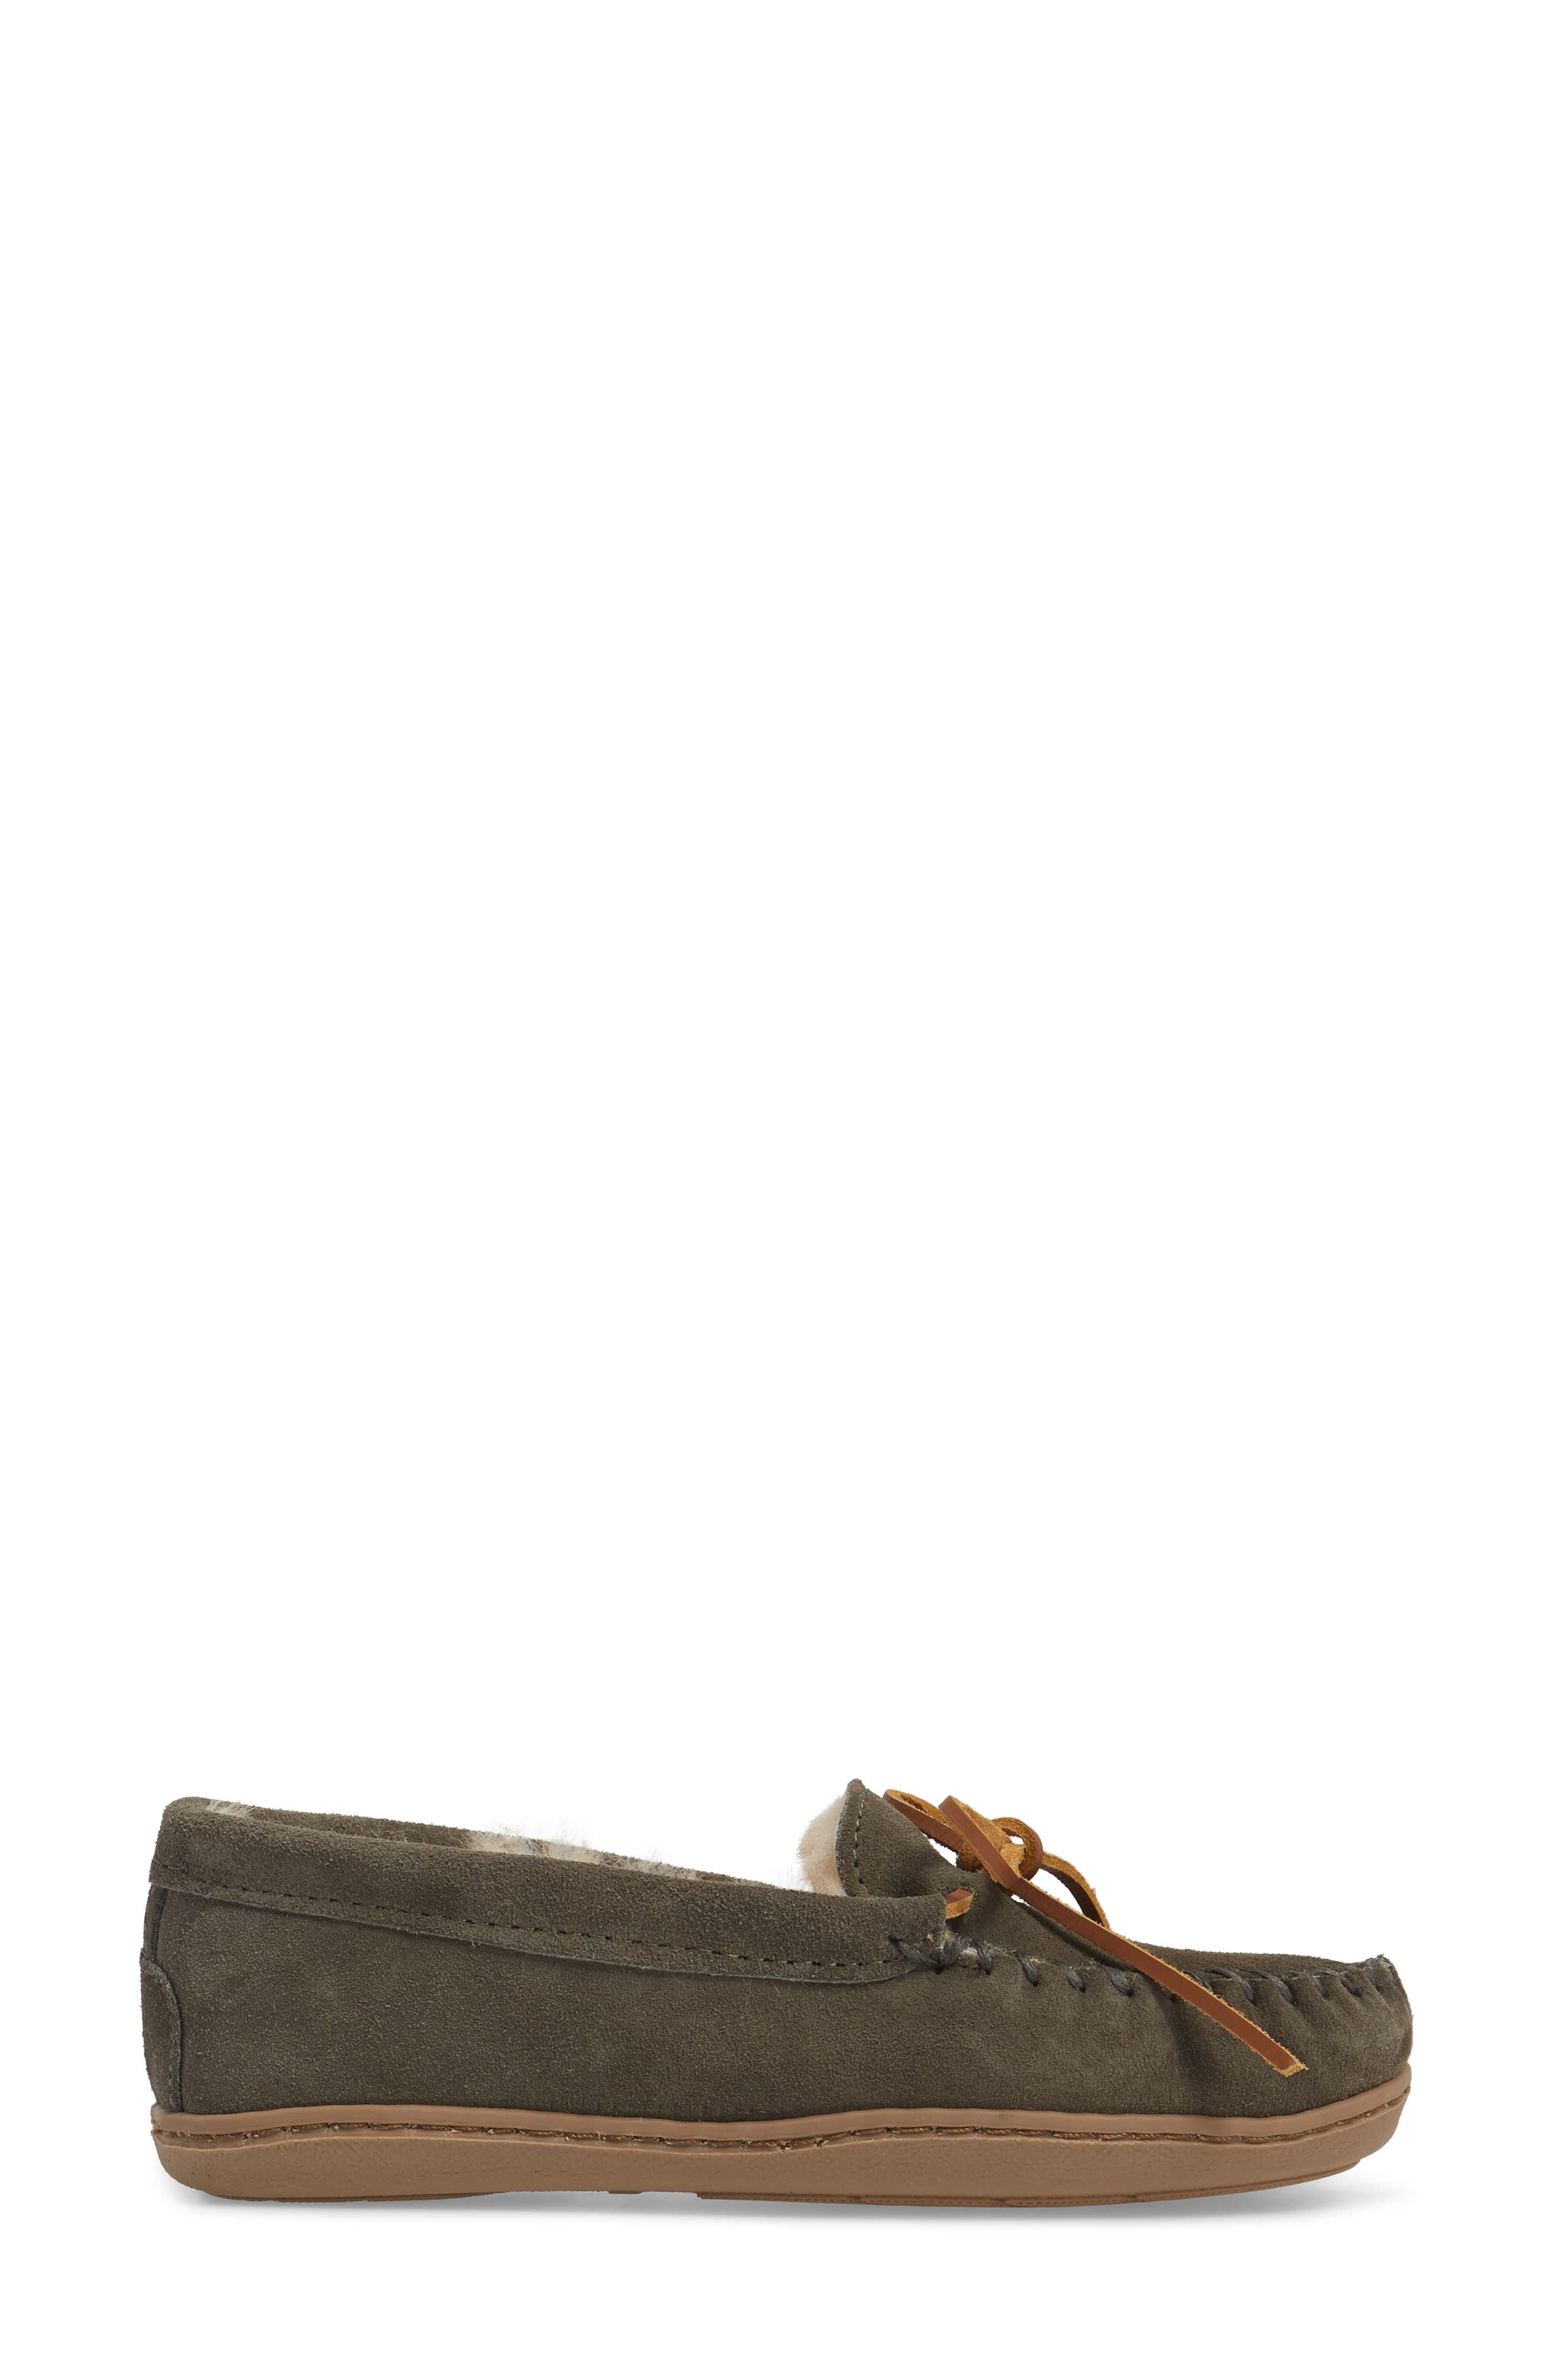 Genuine Shearling Hard Sole Moccasin Indoor/Outdoor Slipper,                             Alternate thumbnail 3, color,                             GREY